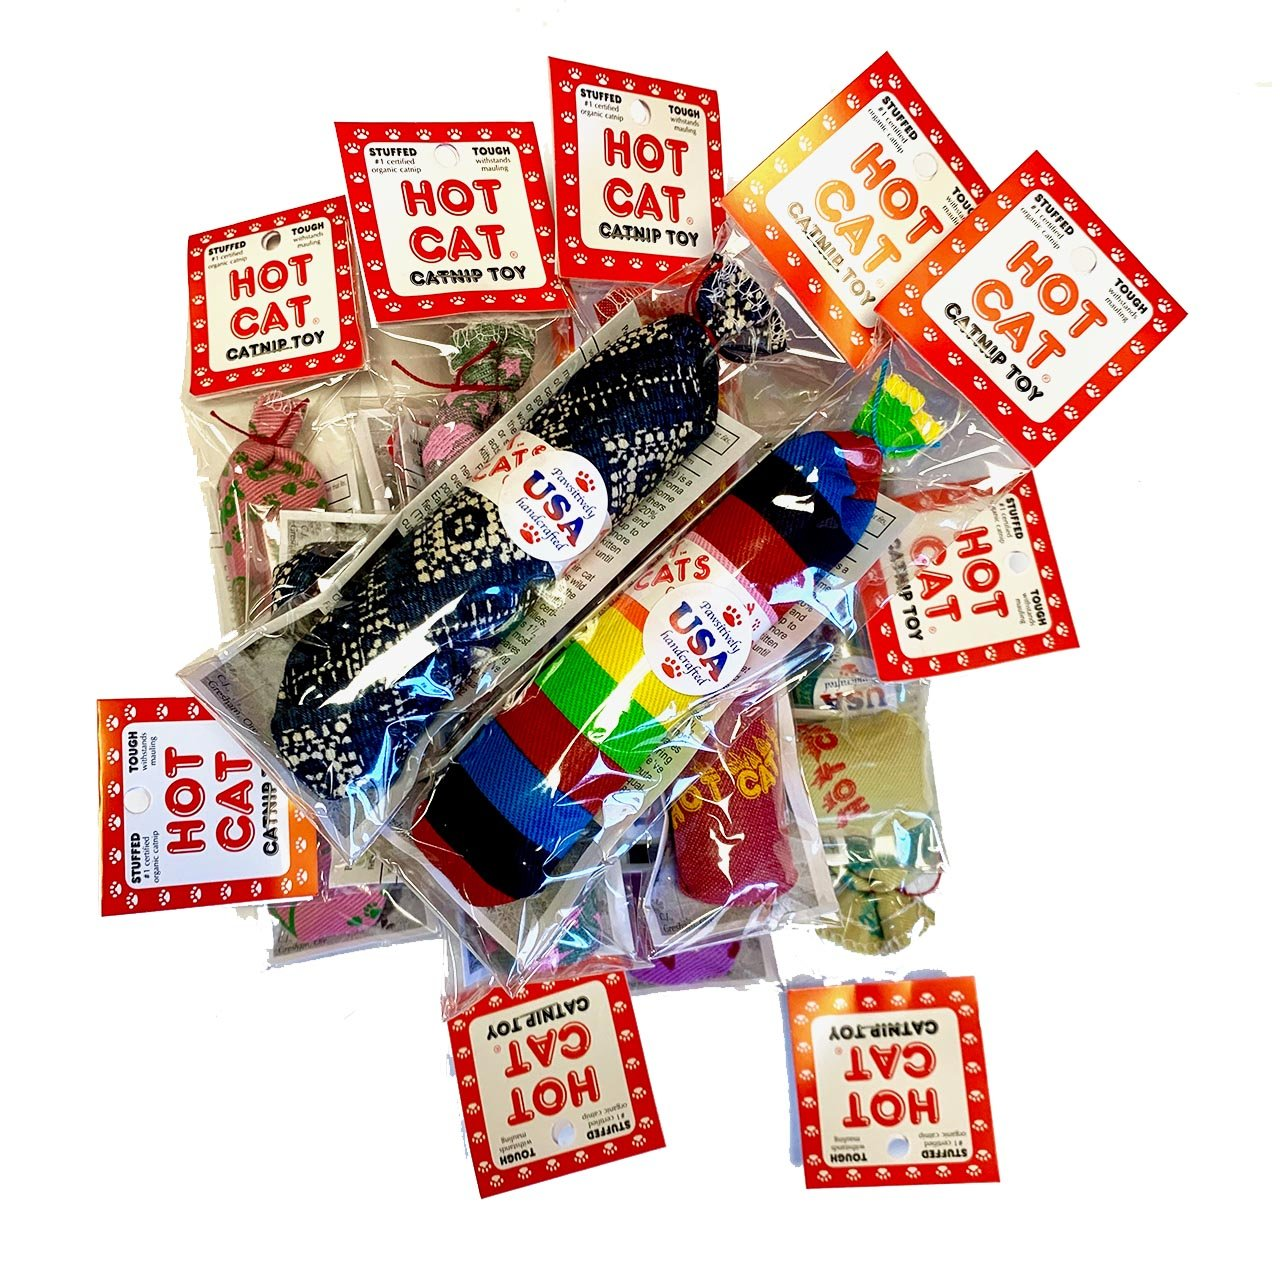 Colorful Sausage shaped toys filled with catnip, packaged in clear cellophane with cardboard tag.